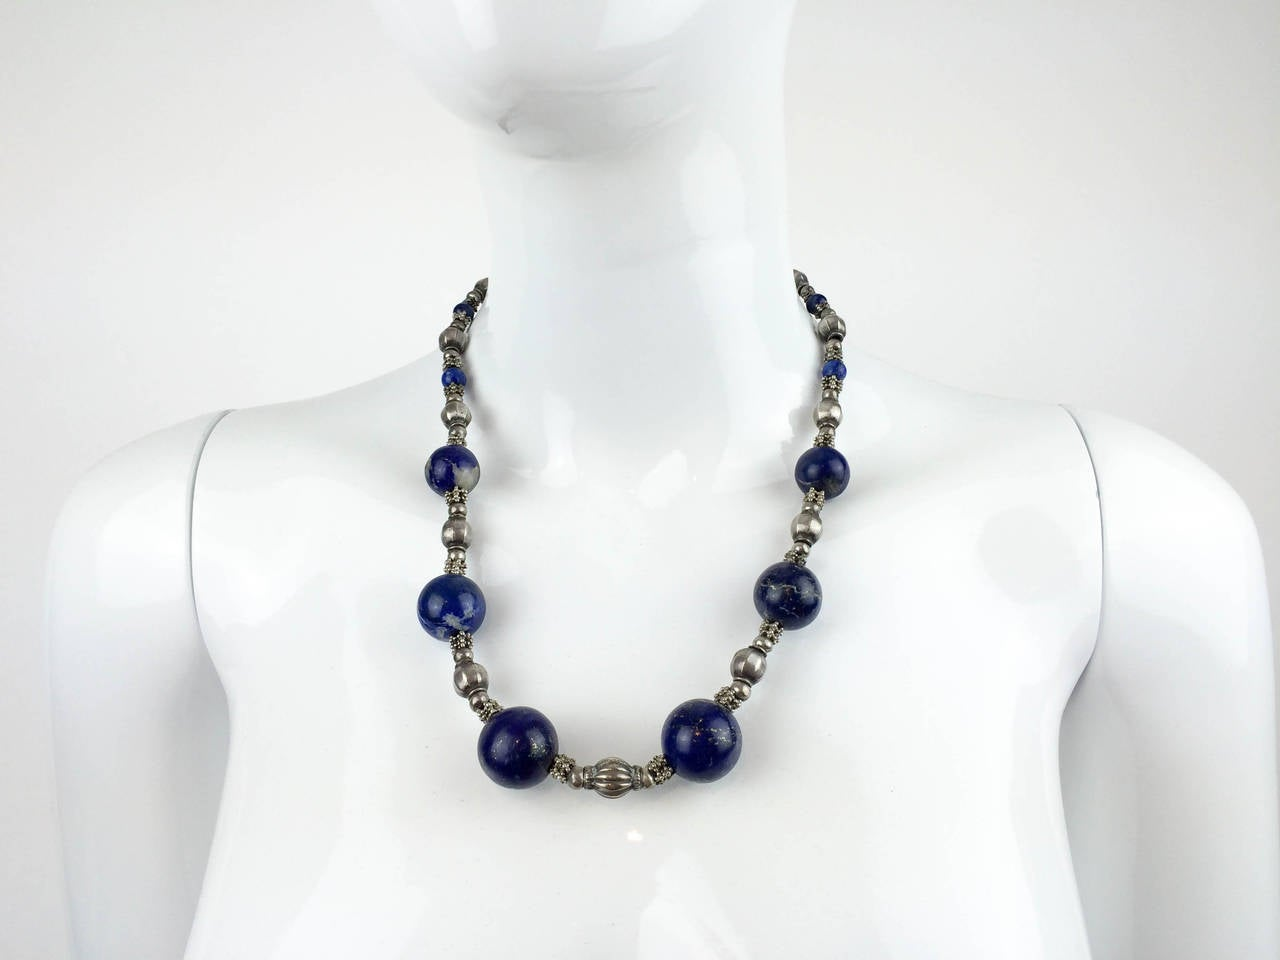 Silver and Lapis Lazuli Necklace - 1970s 3